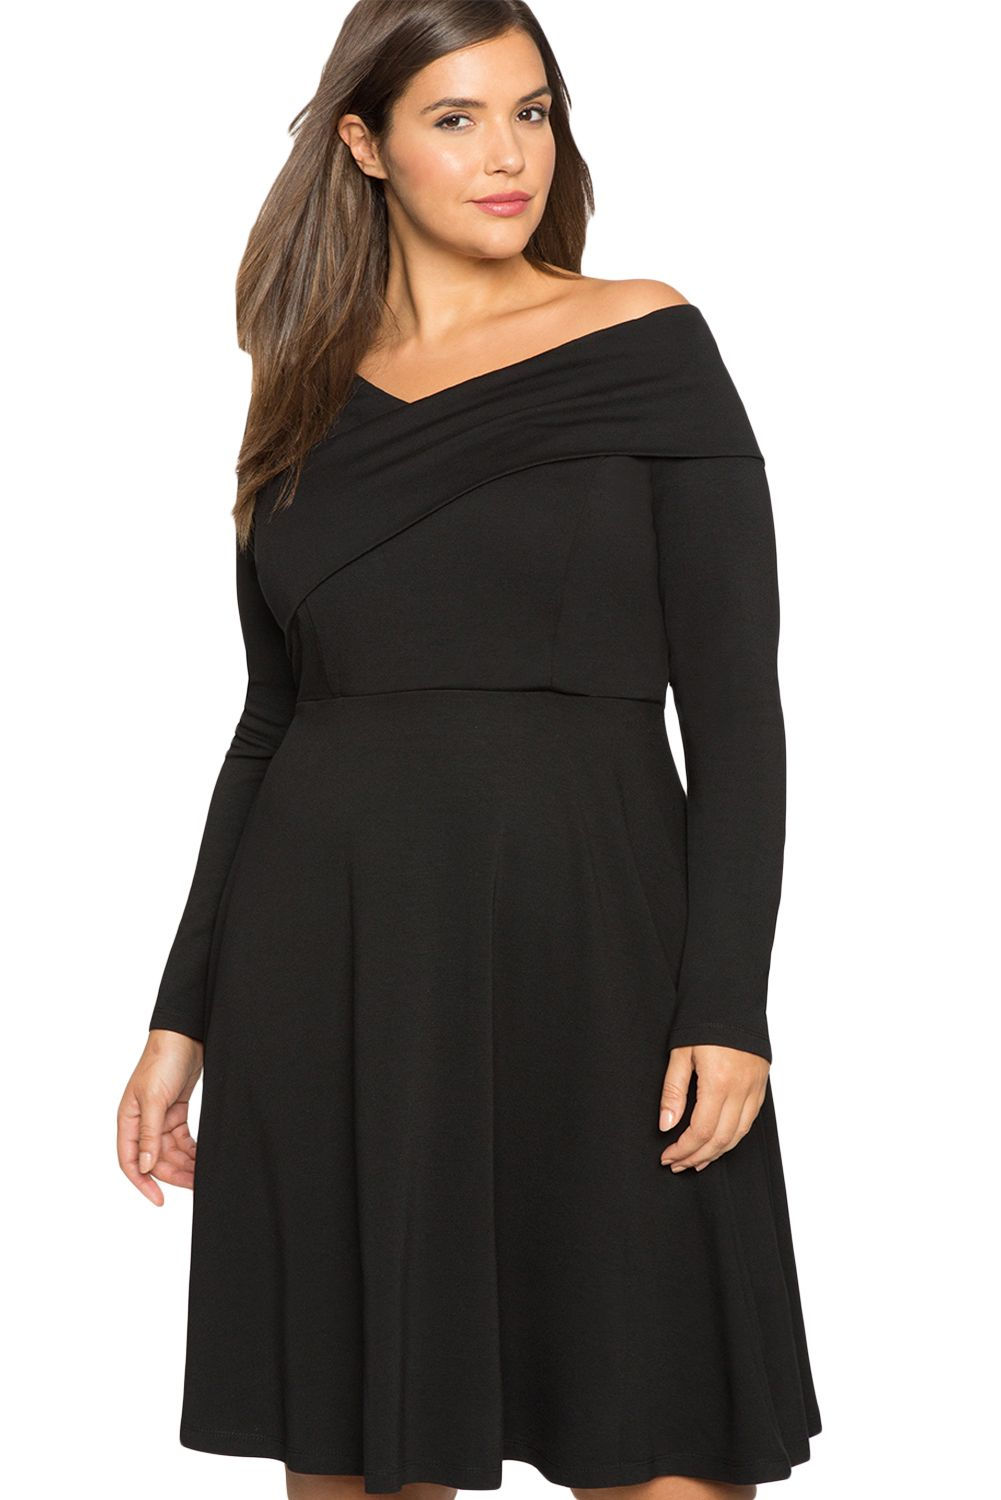 Click to buy ucuc blackred cross shoulder fit and flare curvy dress